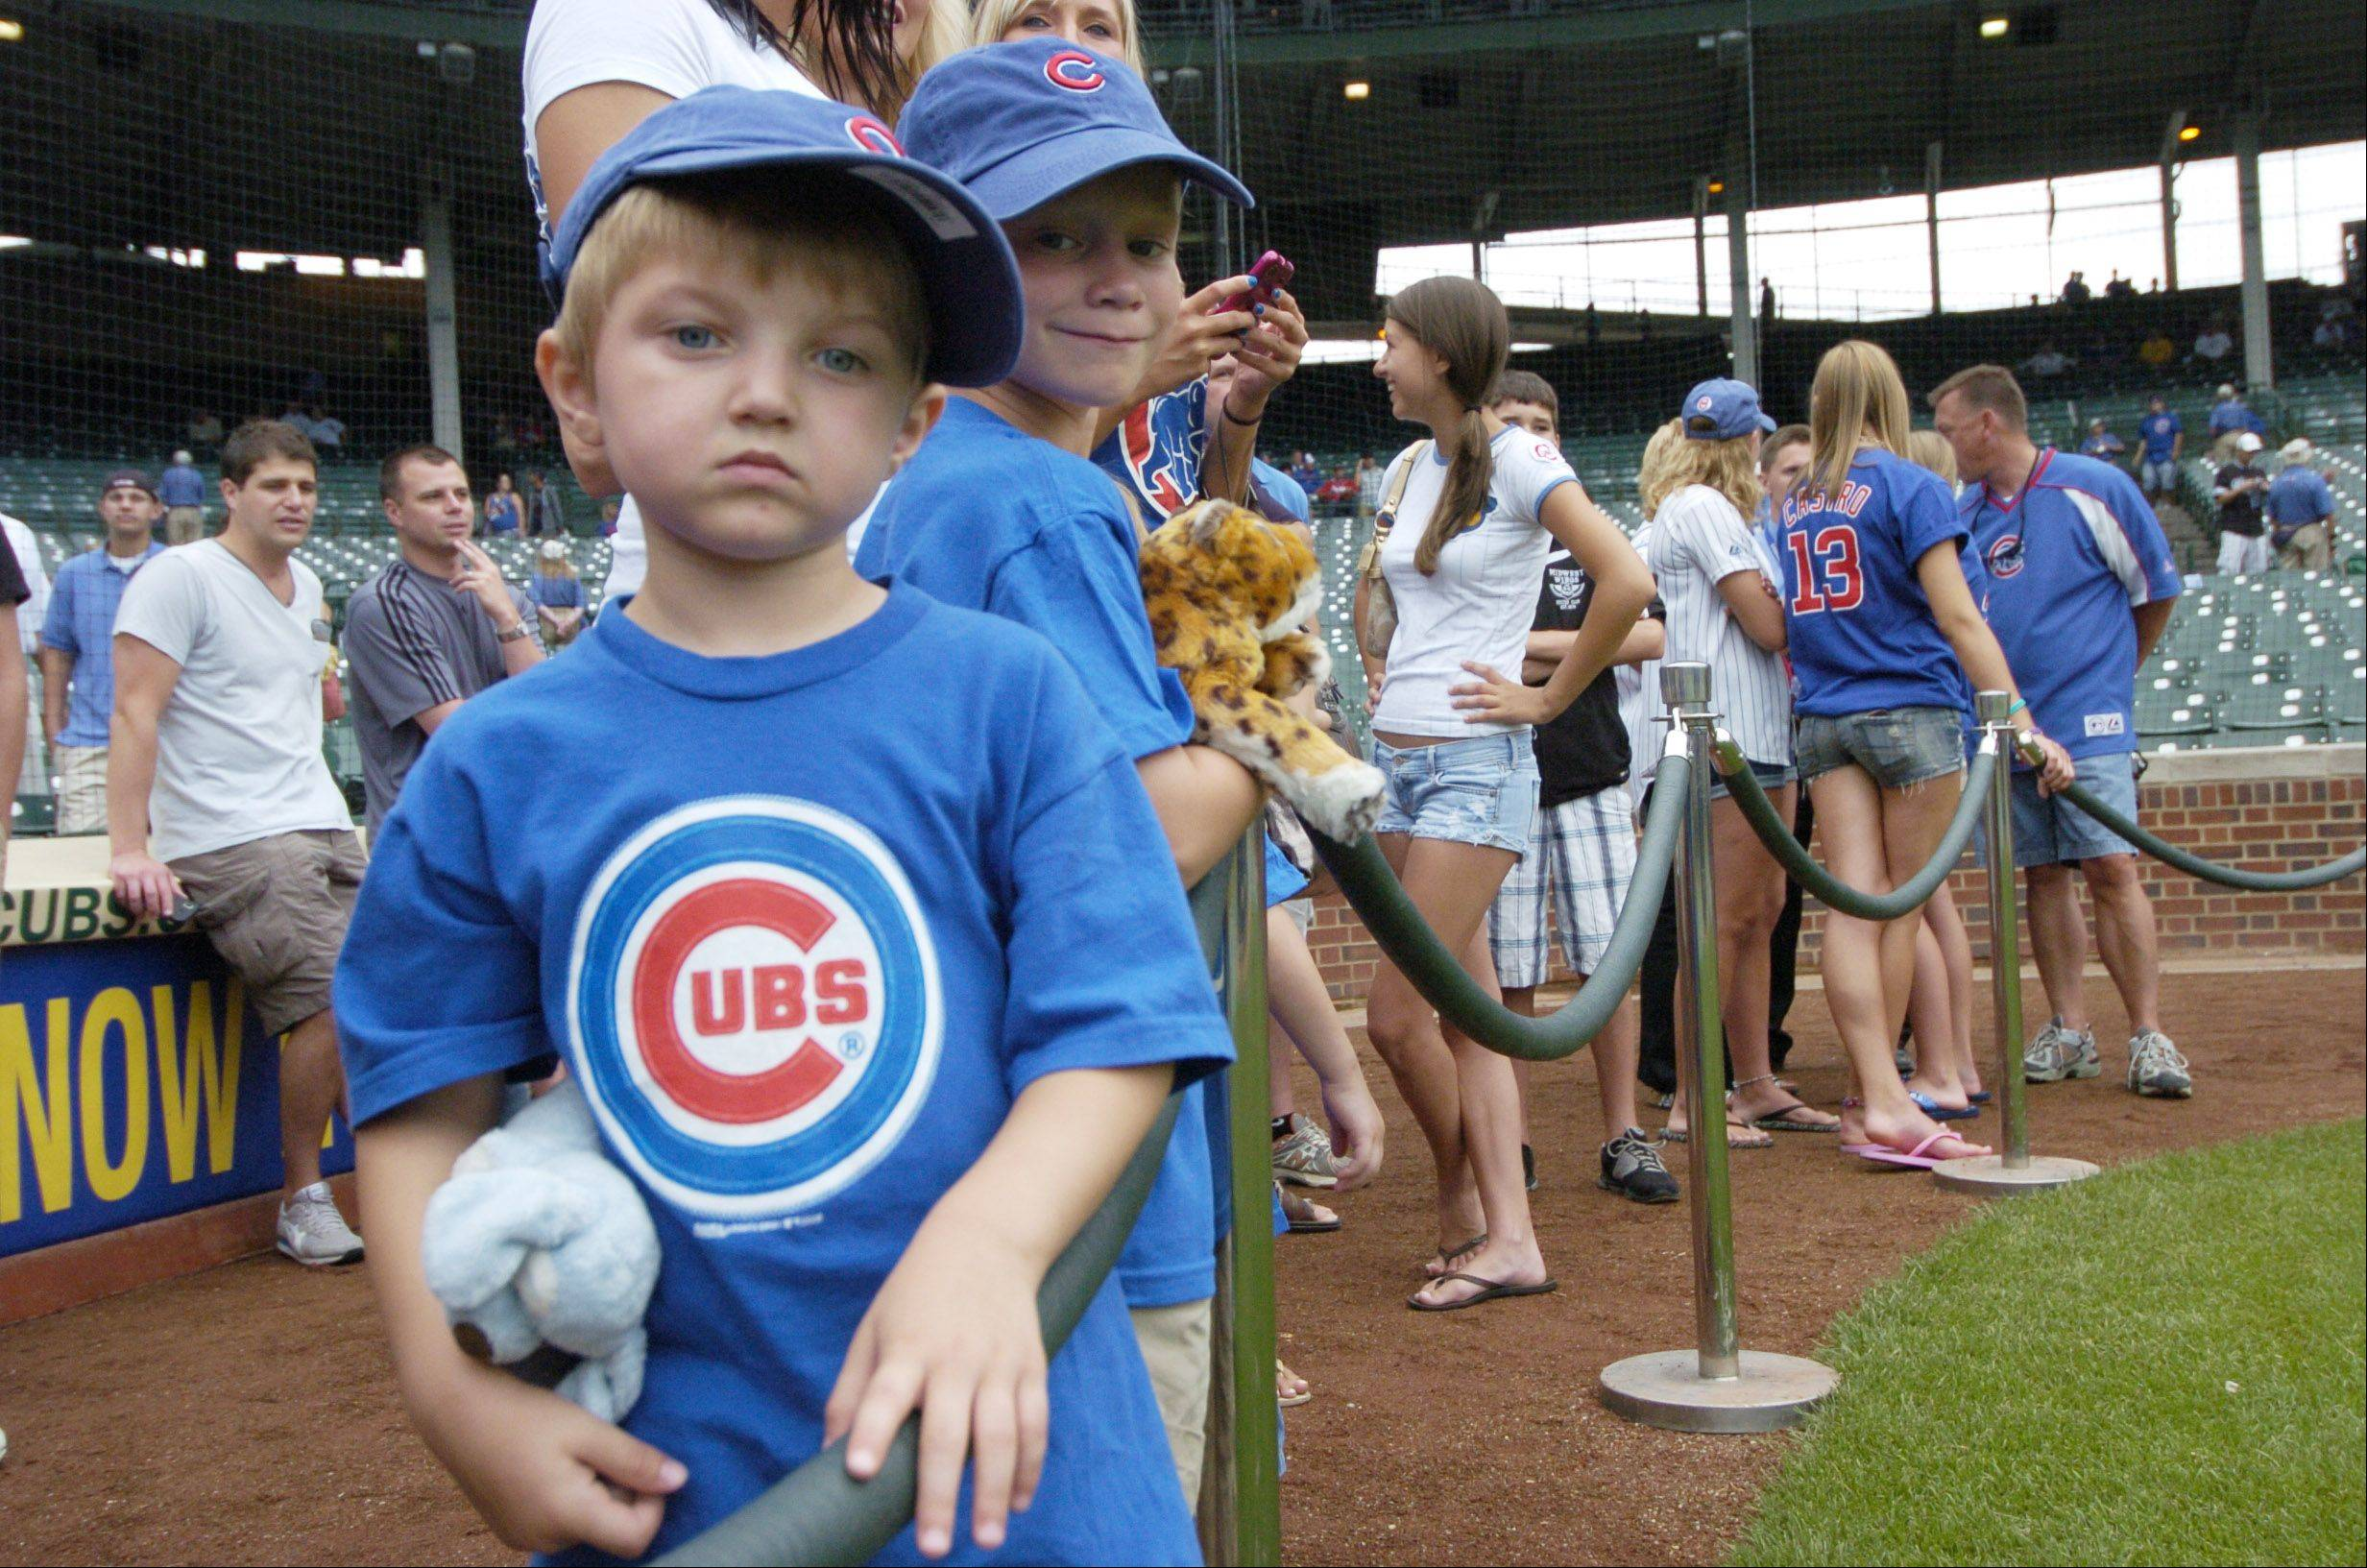 Jaydyn Foley, 3, of Burr Ridge waits in the Kid's Corral for a player's autograph before Friday's game between the Cubs and Sox at Wrigley Field.